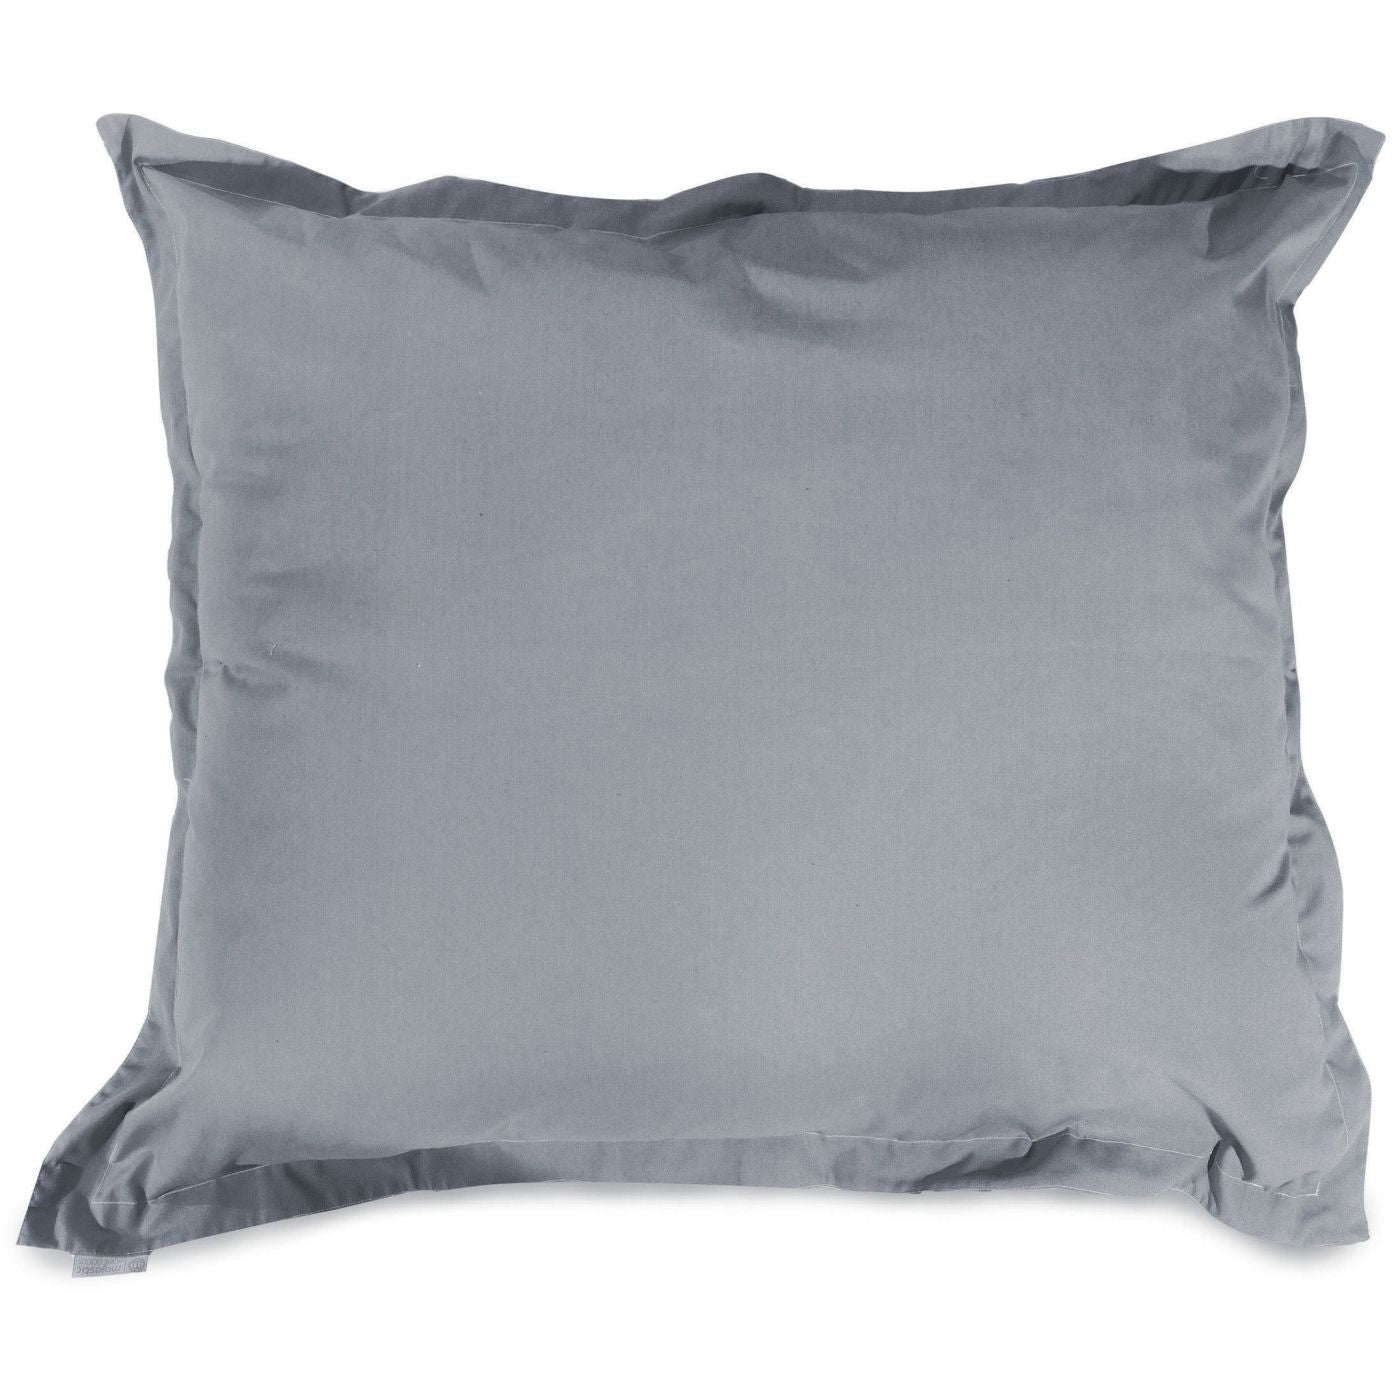 Gray Floor Pillows : Majestic Home Gray Solid Floor Pillow 85907226088. Only $147.40 at Contemporary Furniture Warehouse.